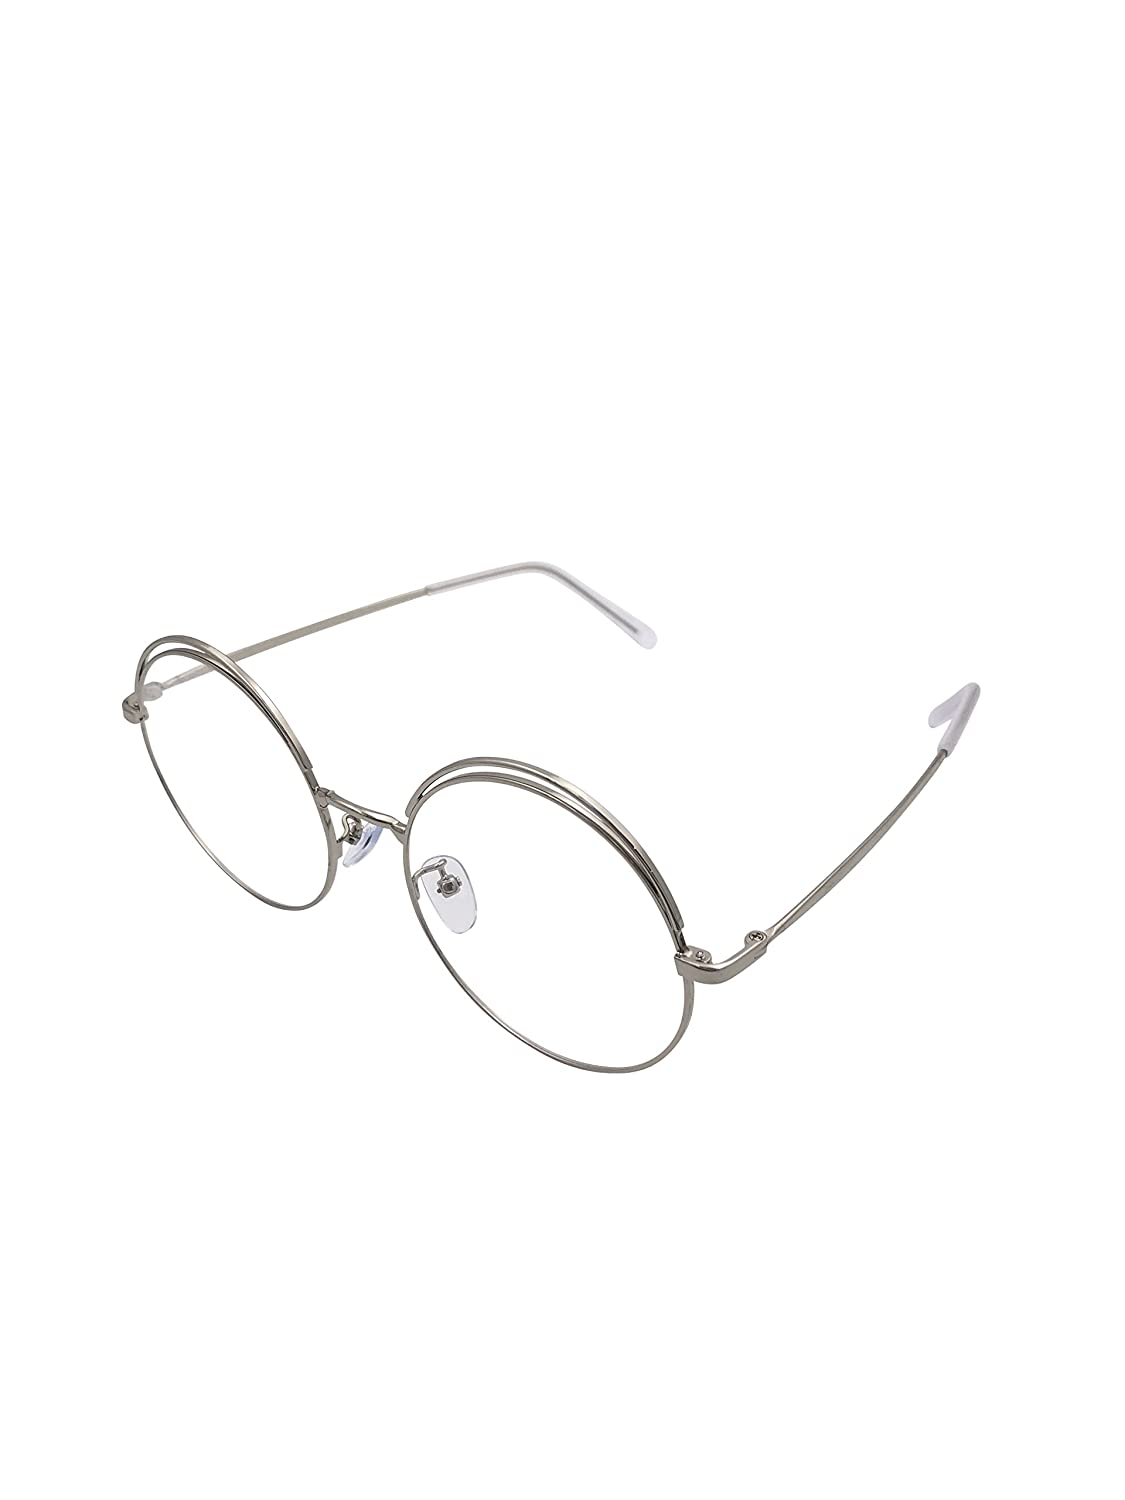 XYAS Retro Glasses Metal Frame Unisex muti-colors clear lens light and exquisite Eyewear